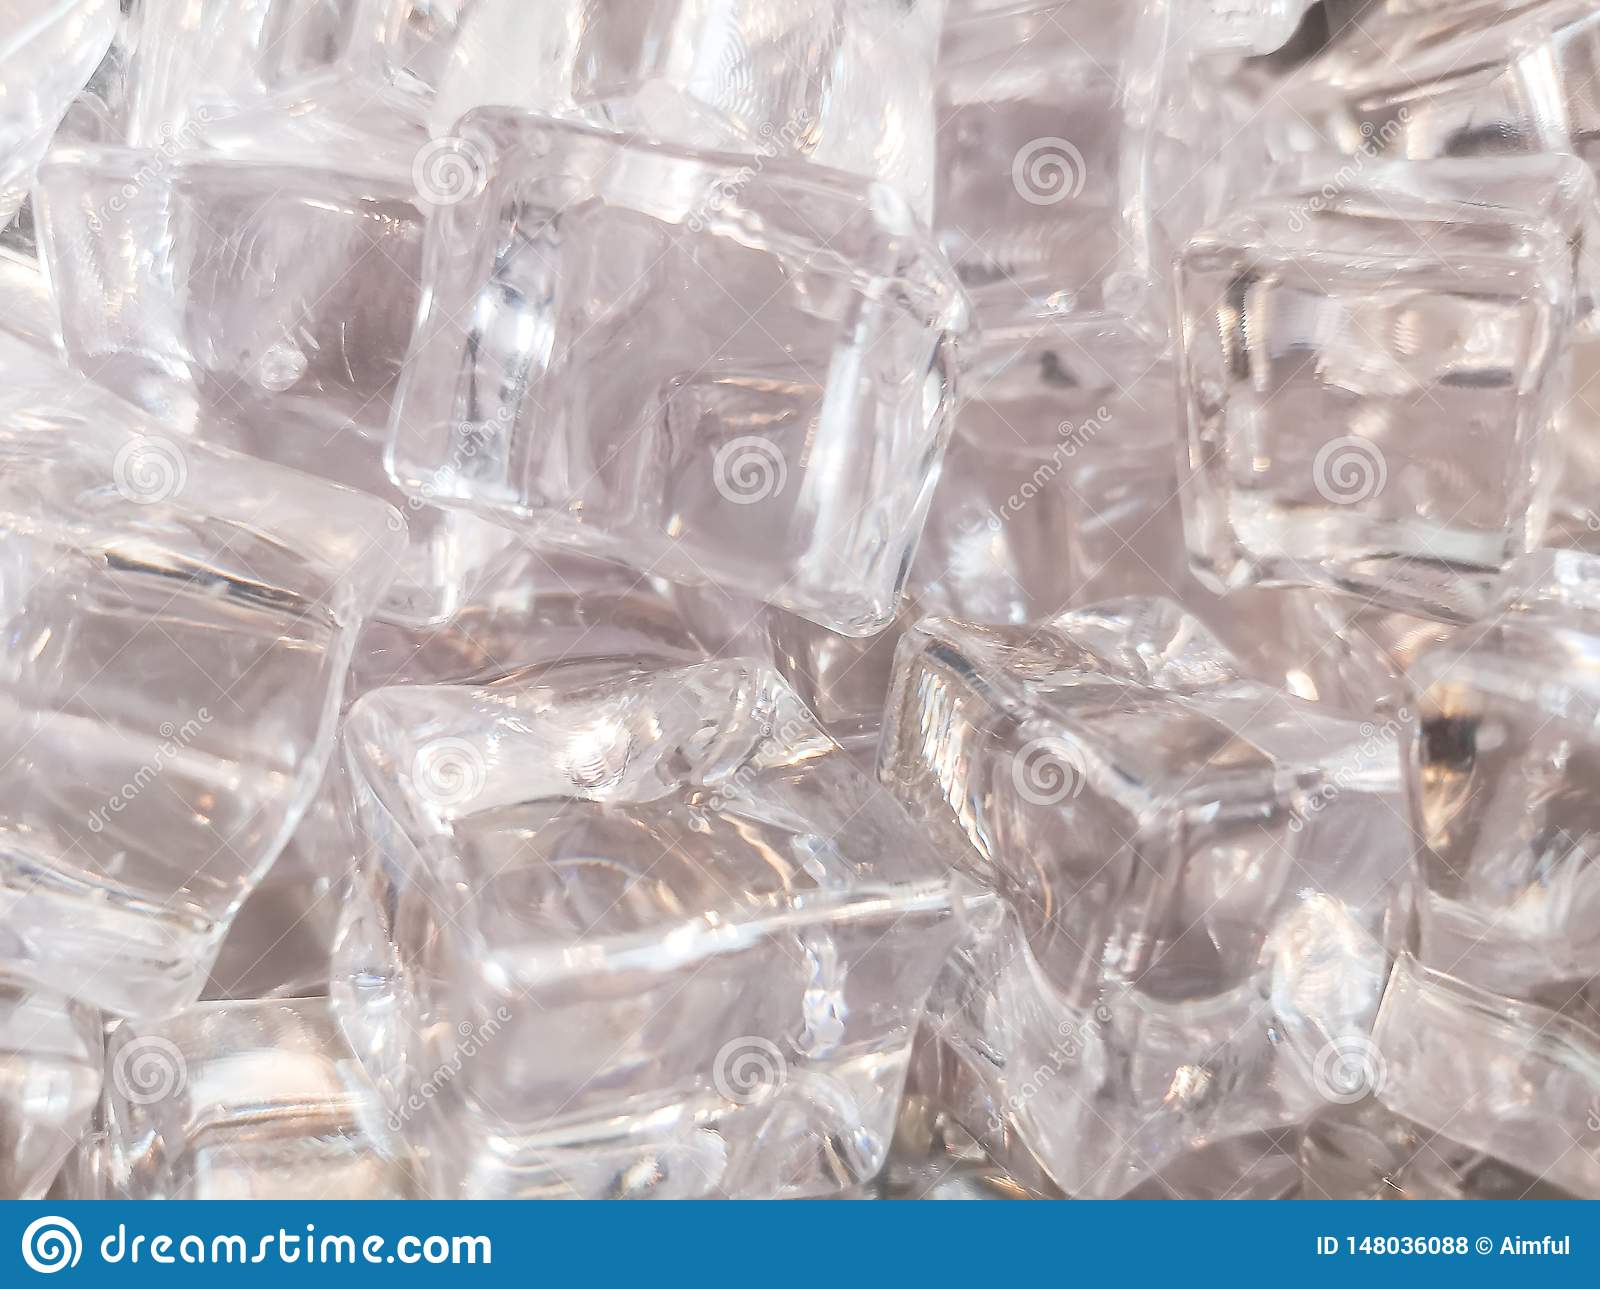 The texture of clean shiny and white square ice for background